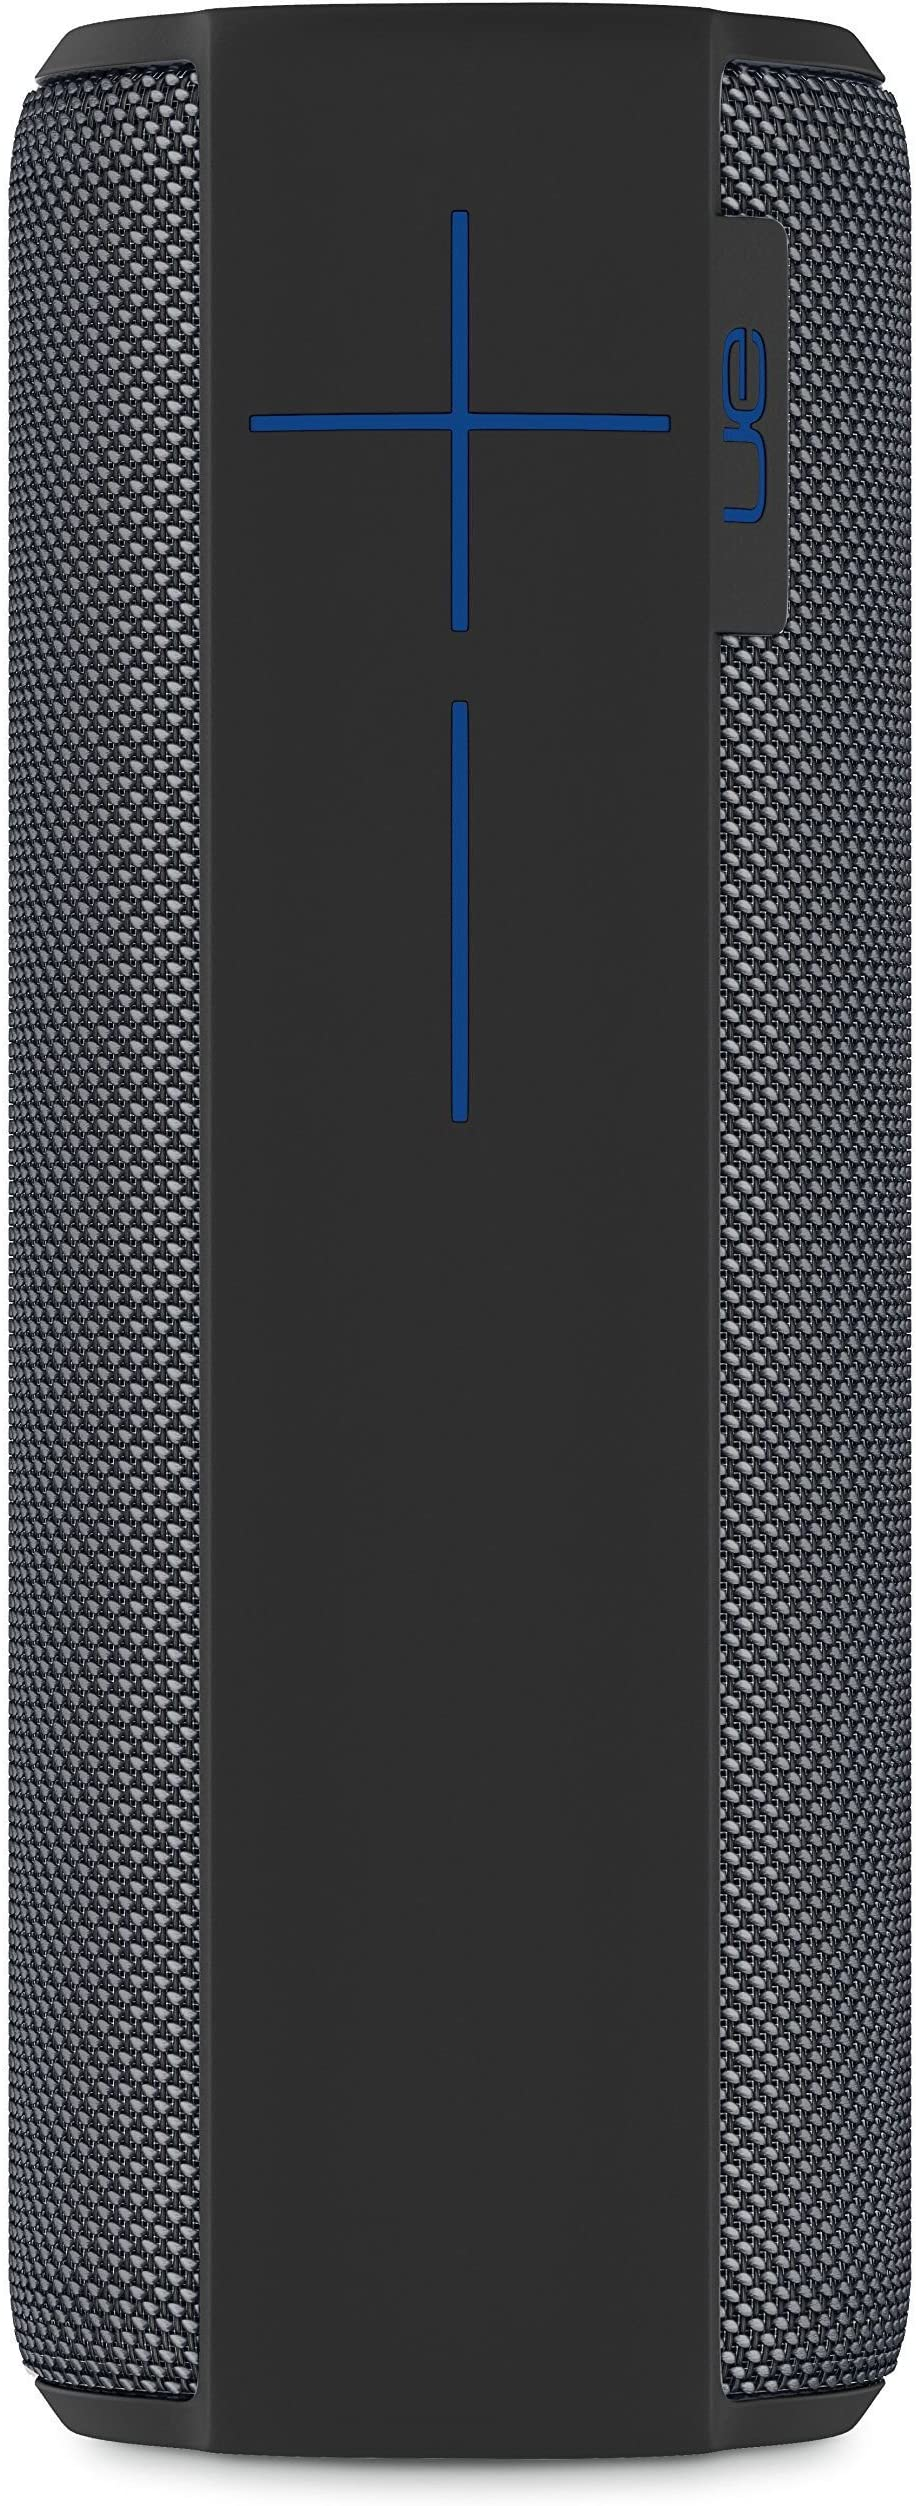 Ultimate Ears MEGABOOM (2015) Portable Waterproof & Shockproof Bluetooth Speaker - Charcoal